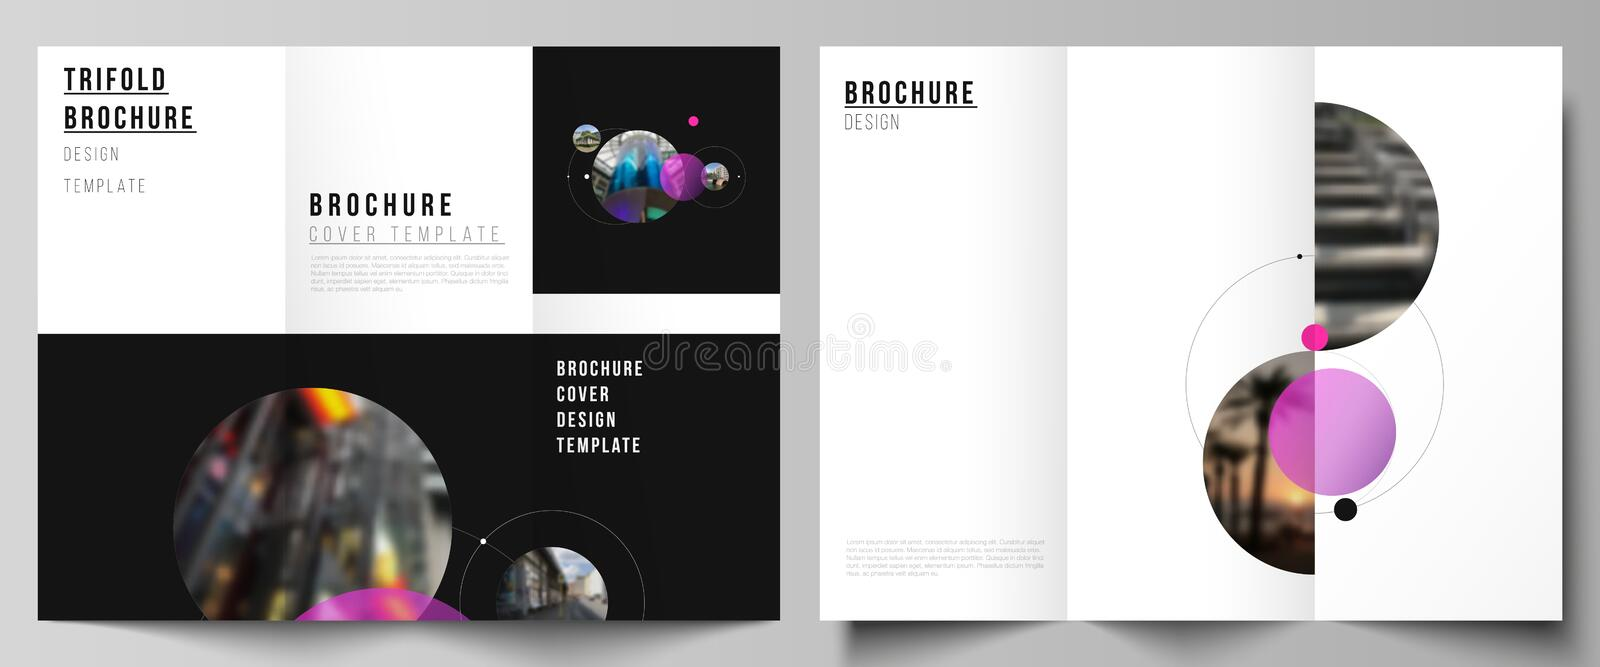 The vector layouts of creative covers design templates for trifold brochure or flyer. Simple design futuristic concept. Creative background with circles and royalty free illustration